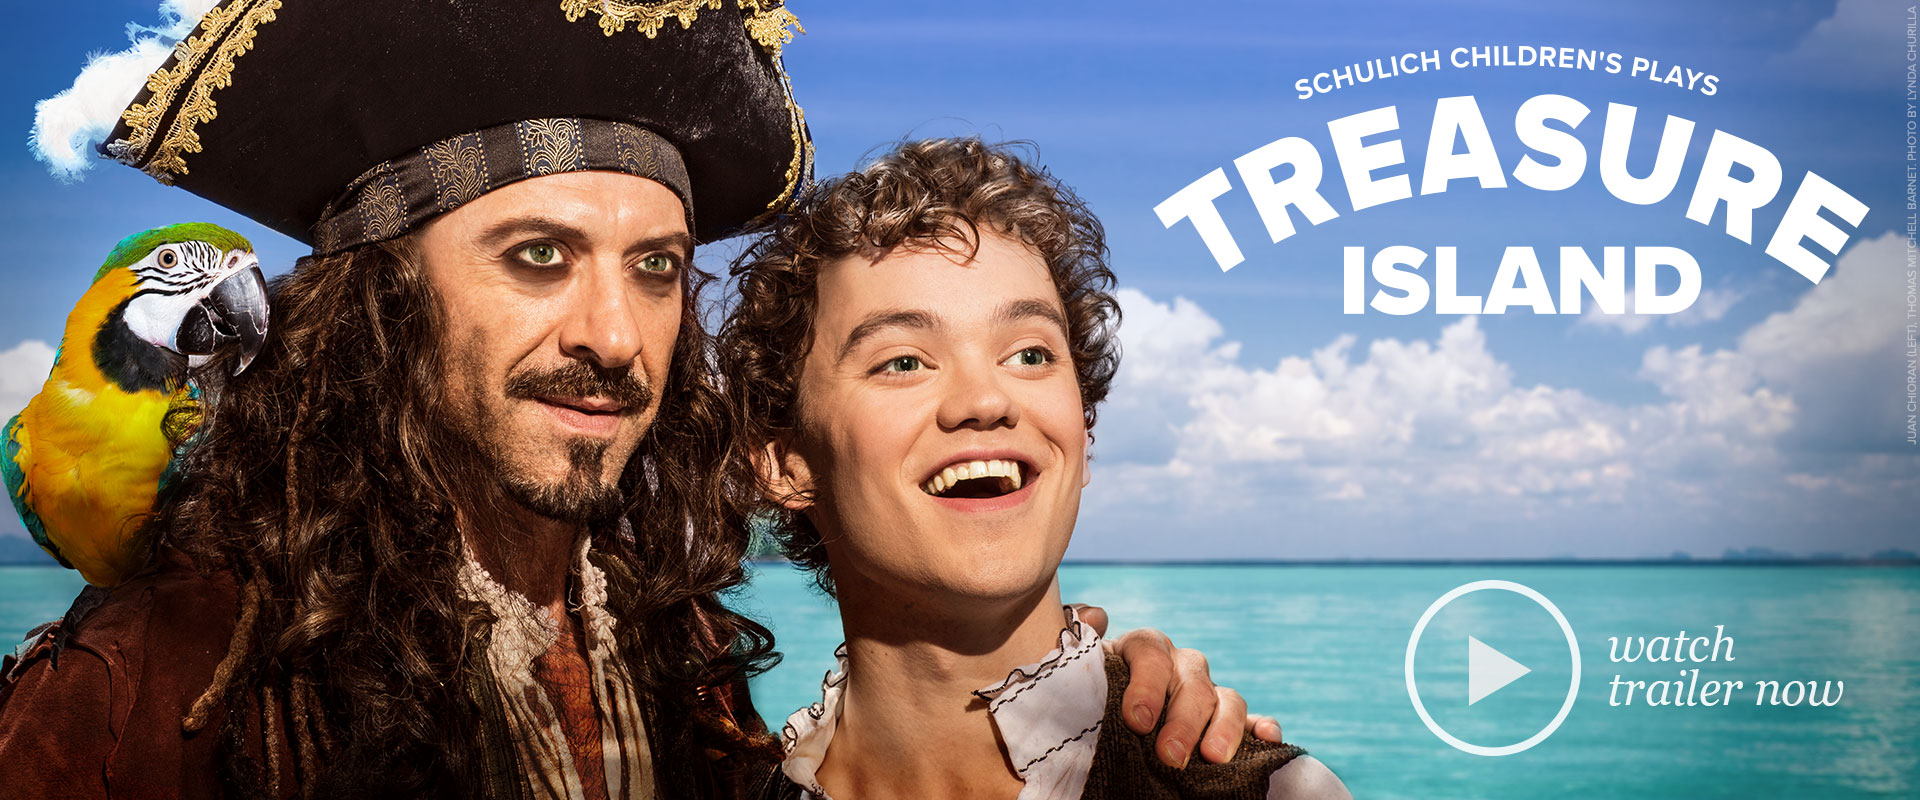 Publicity image from Treasure Island featuring Juan Chioran and Thomas Mitchell Barnet